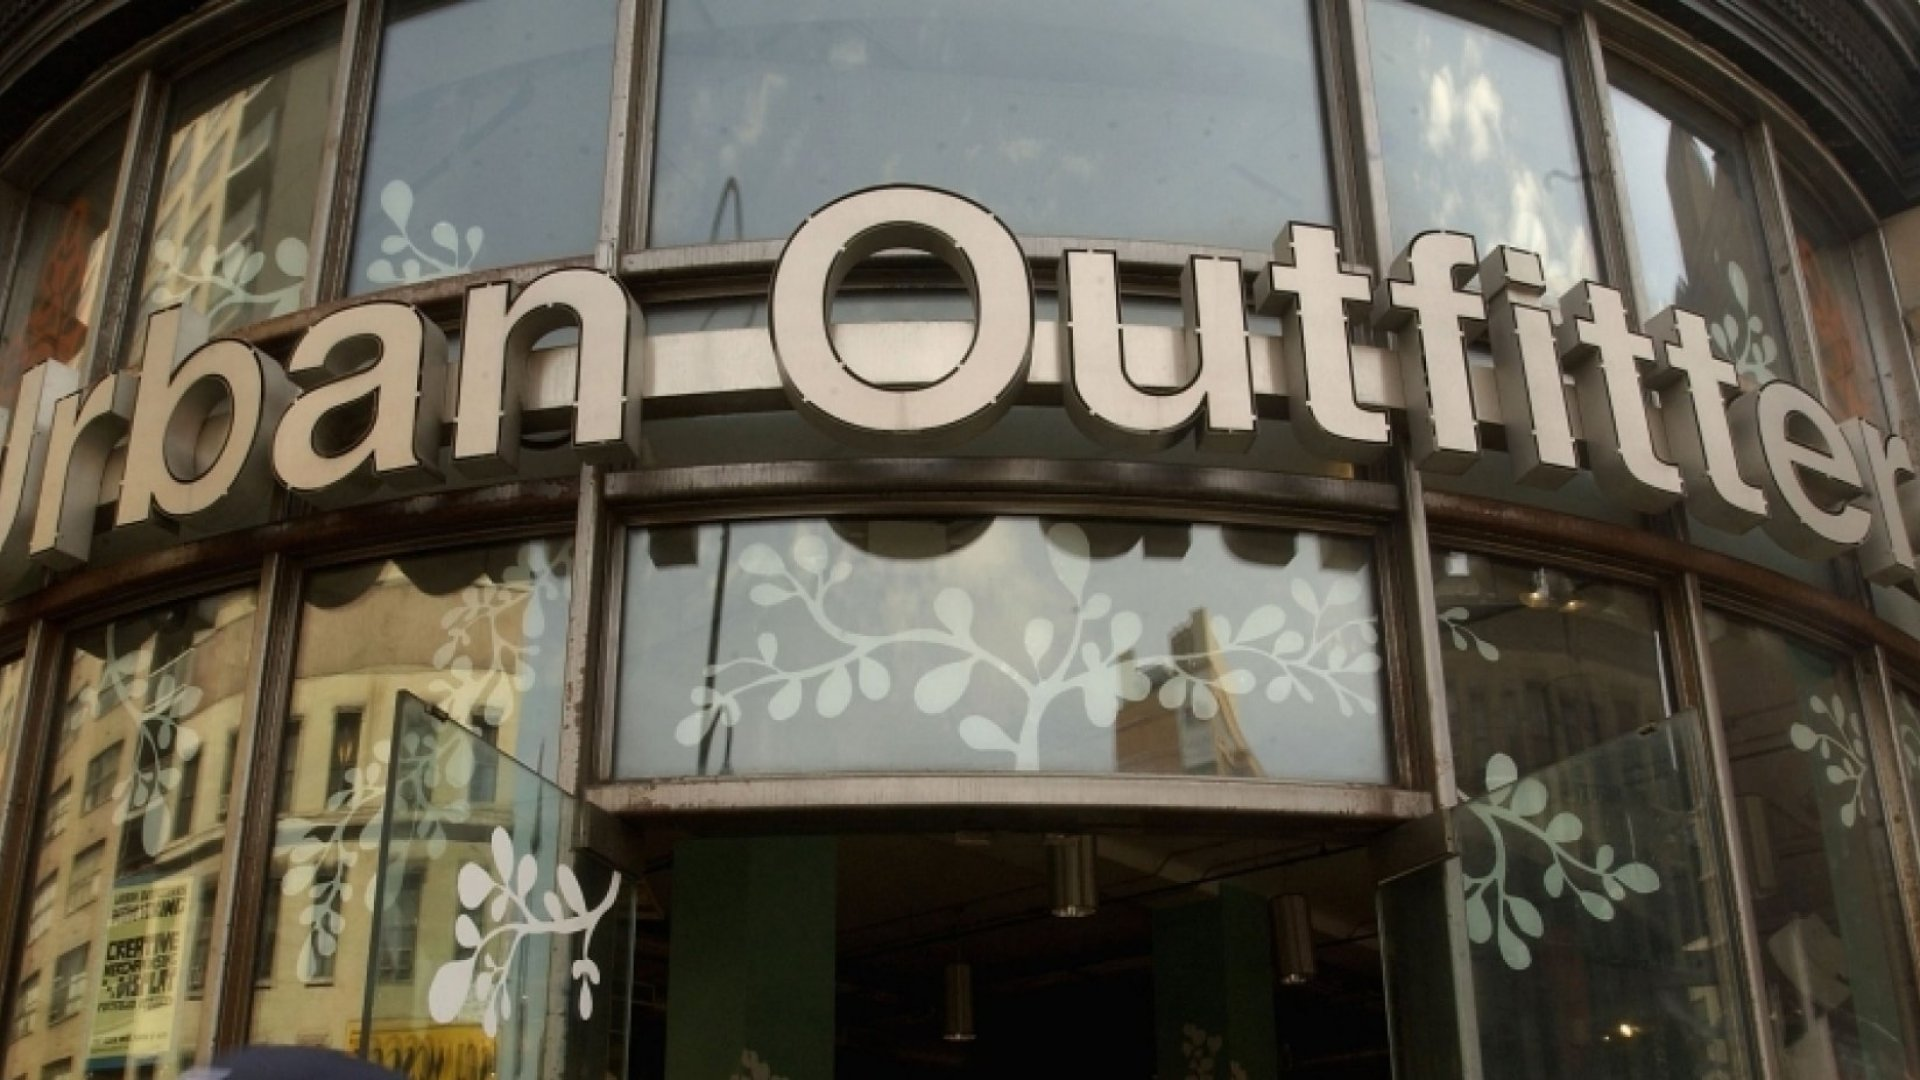 How Urban Outfitters Gets Staff to Work For Free